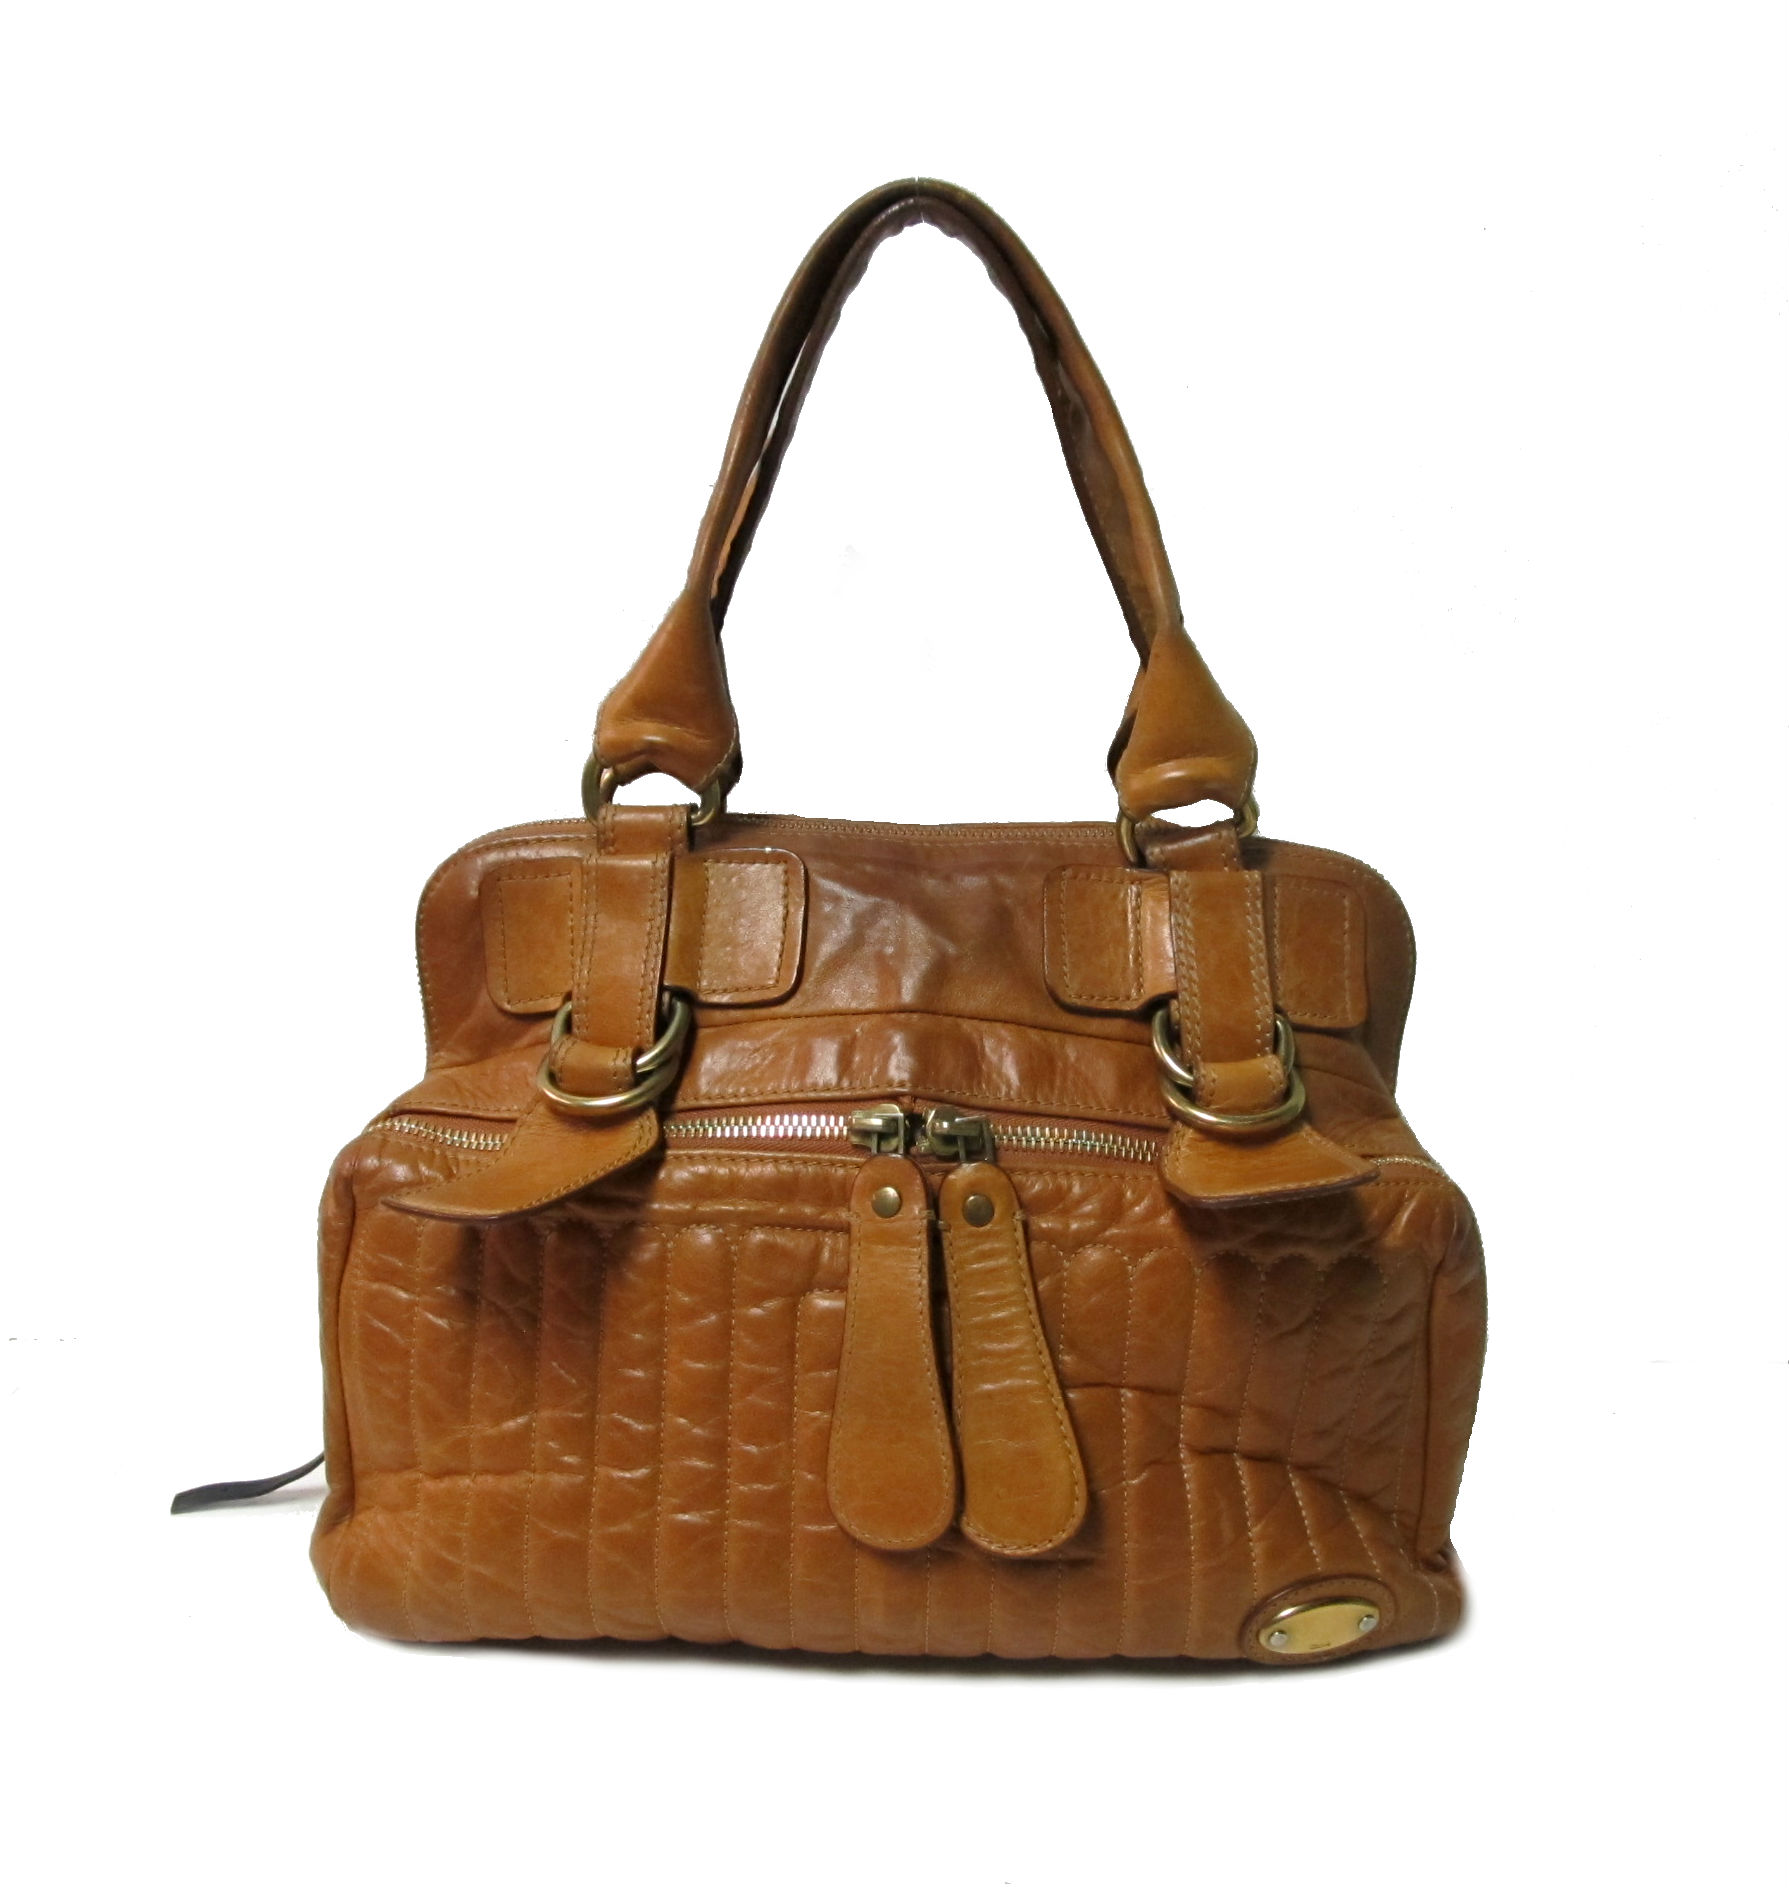 chloe handbags consignment, chloe marcie bag small